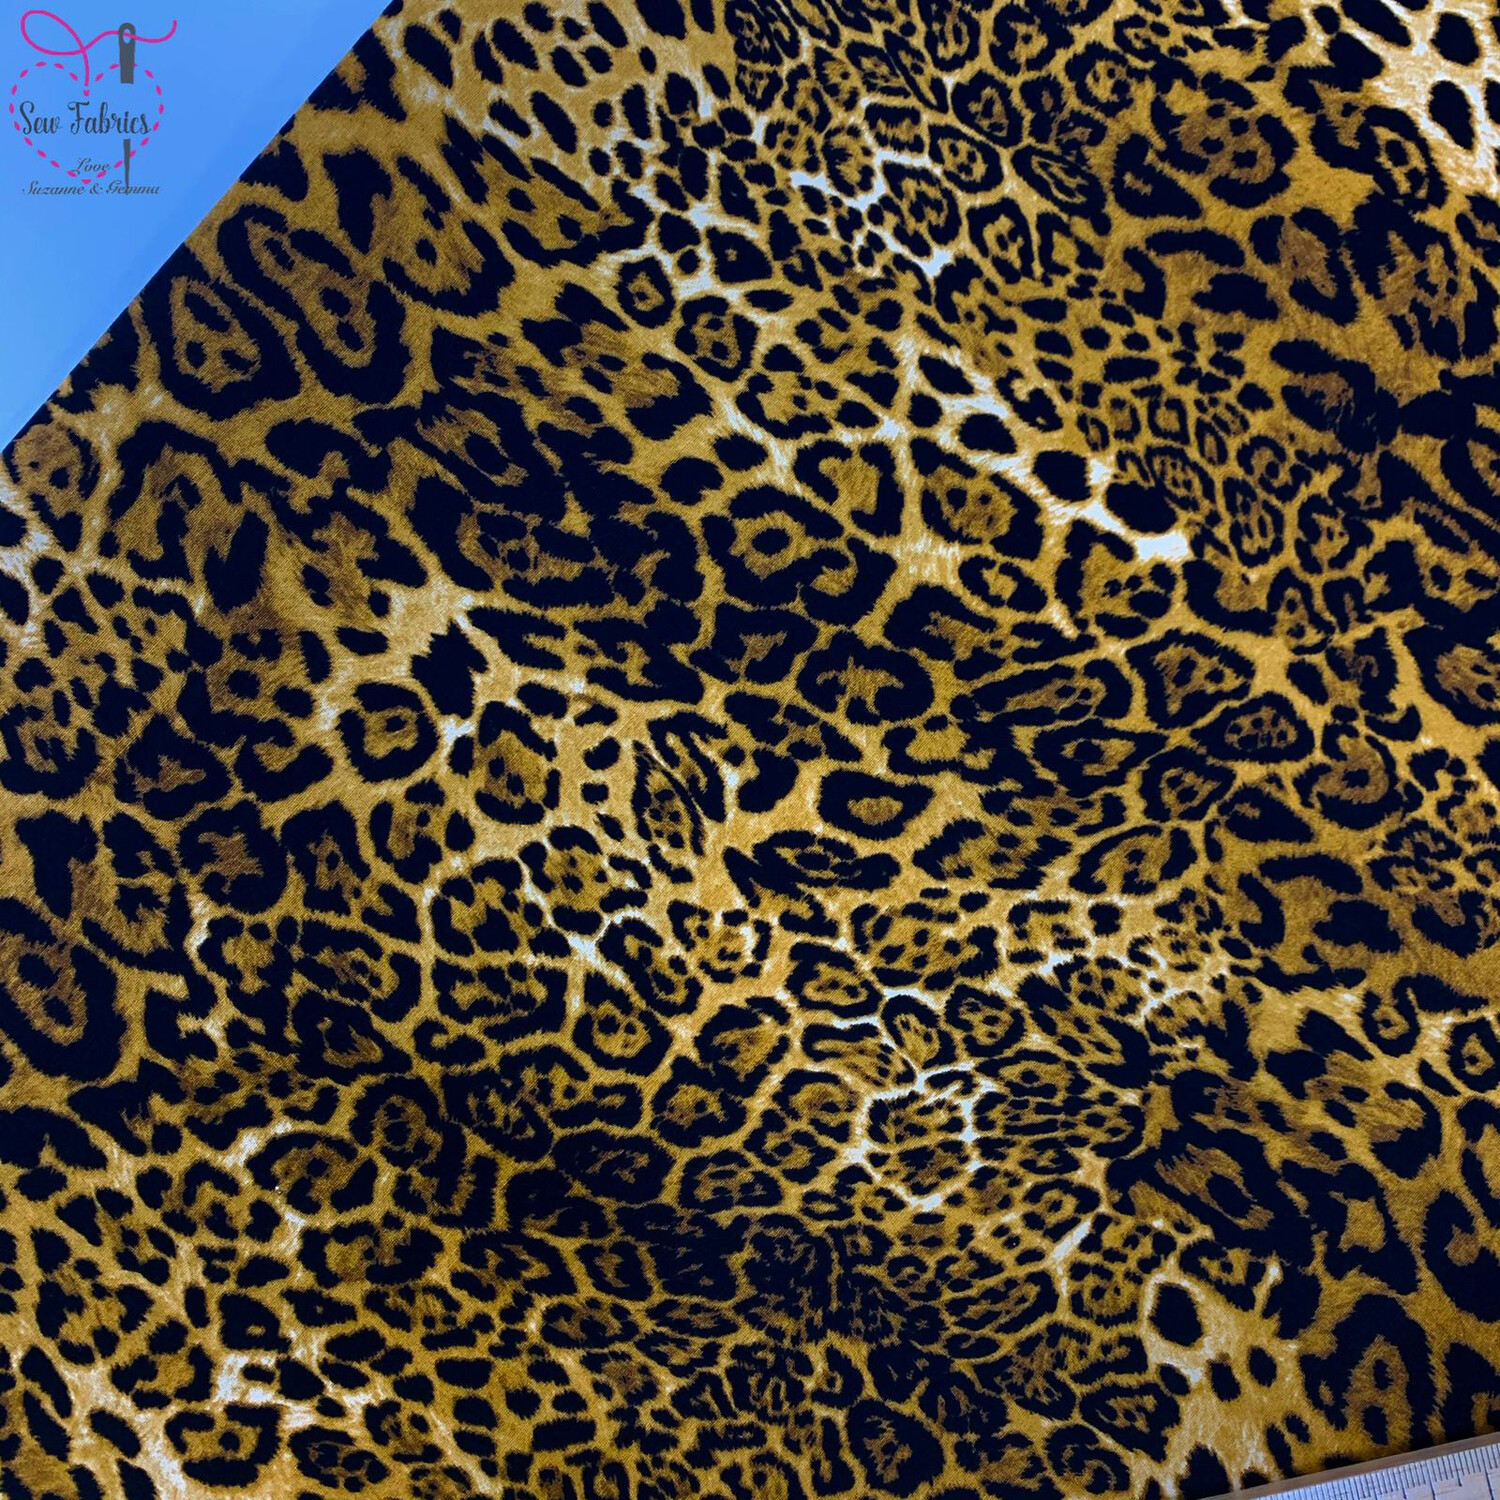 Rose & Hubble Leopard Print 100% Cotton Poplin Fabric, Animal Print Material